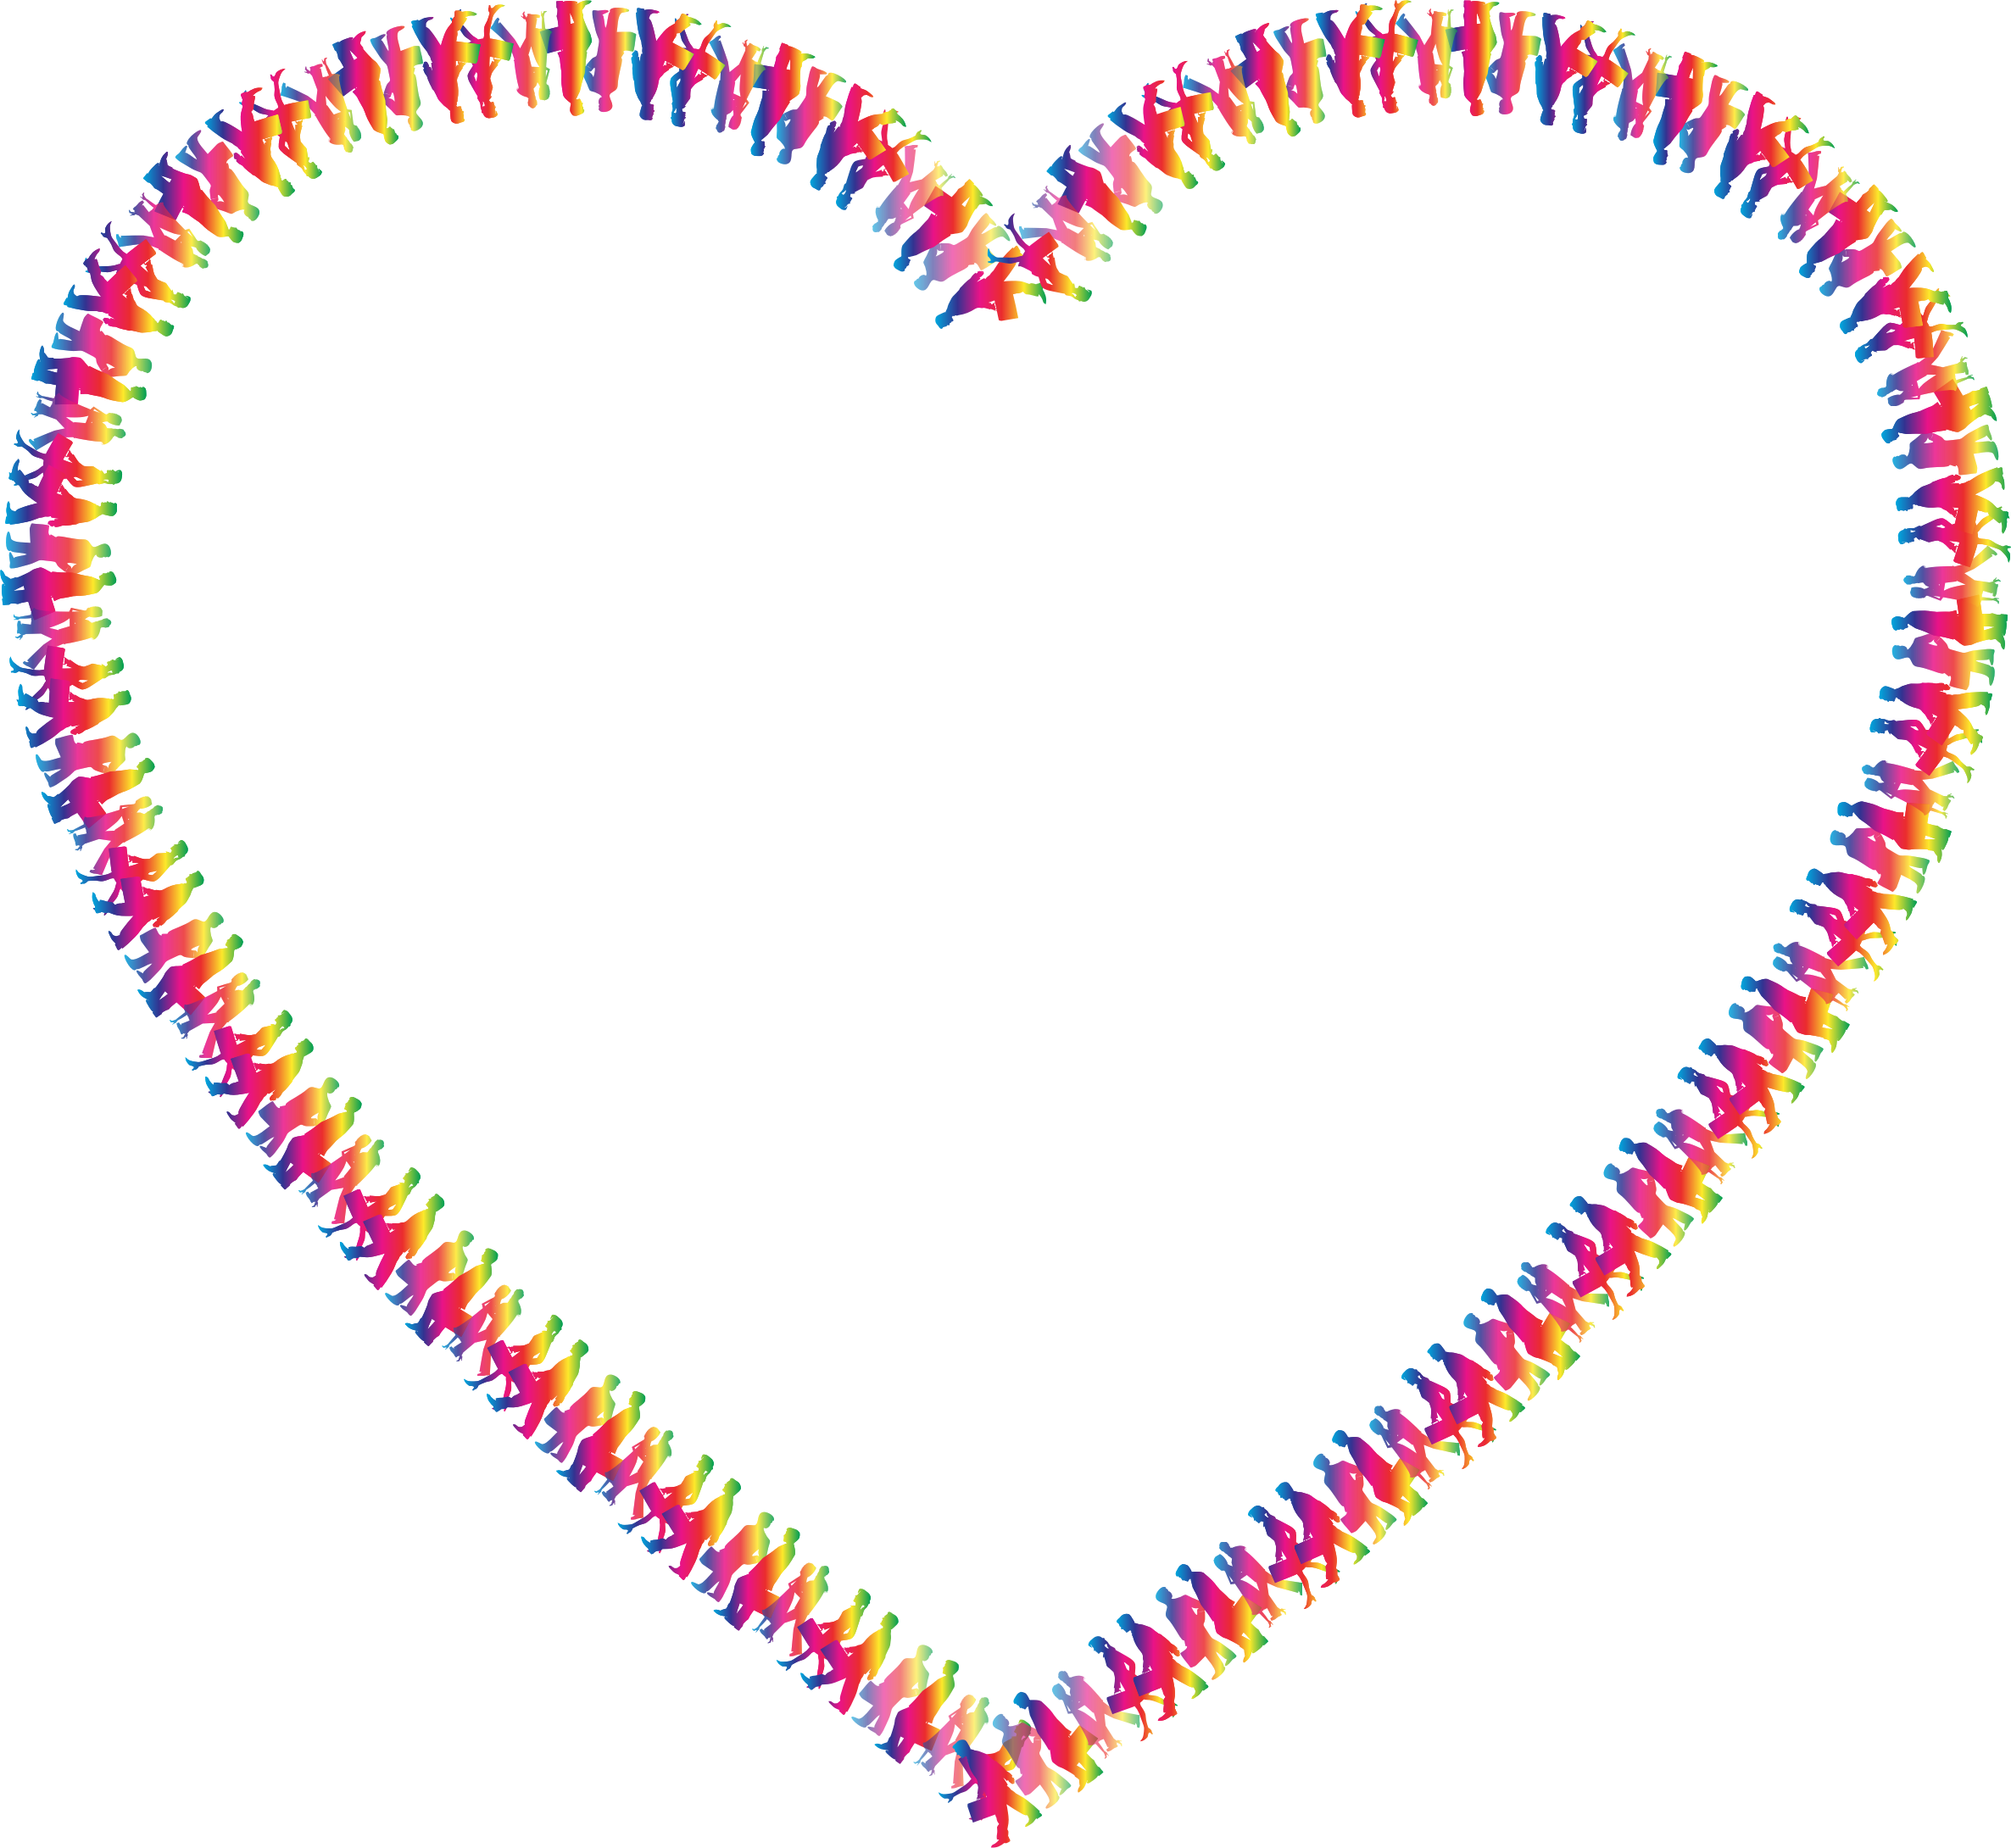 People heart big image. Humans clipart love